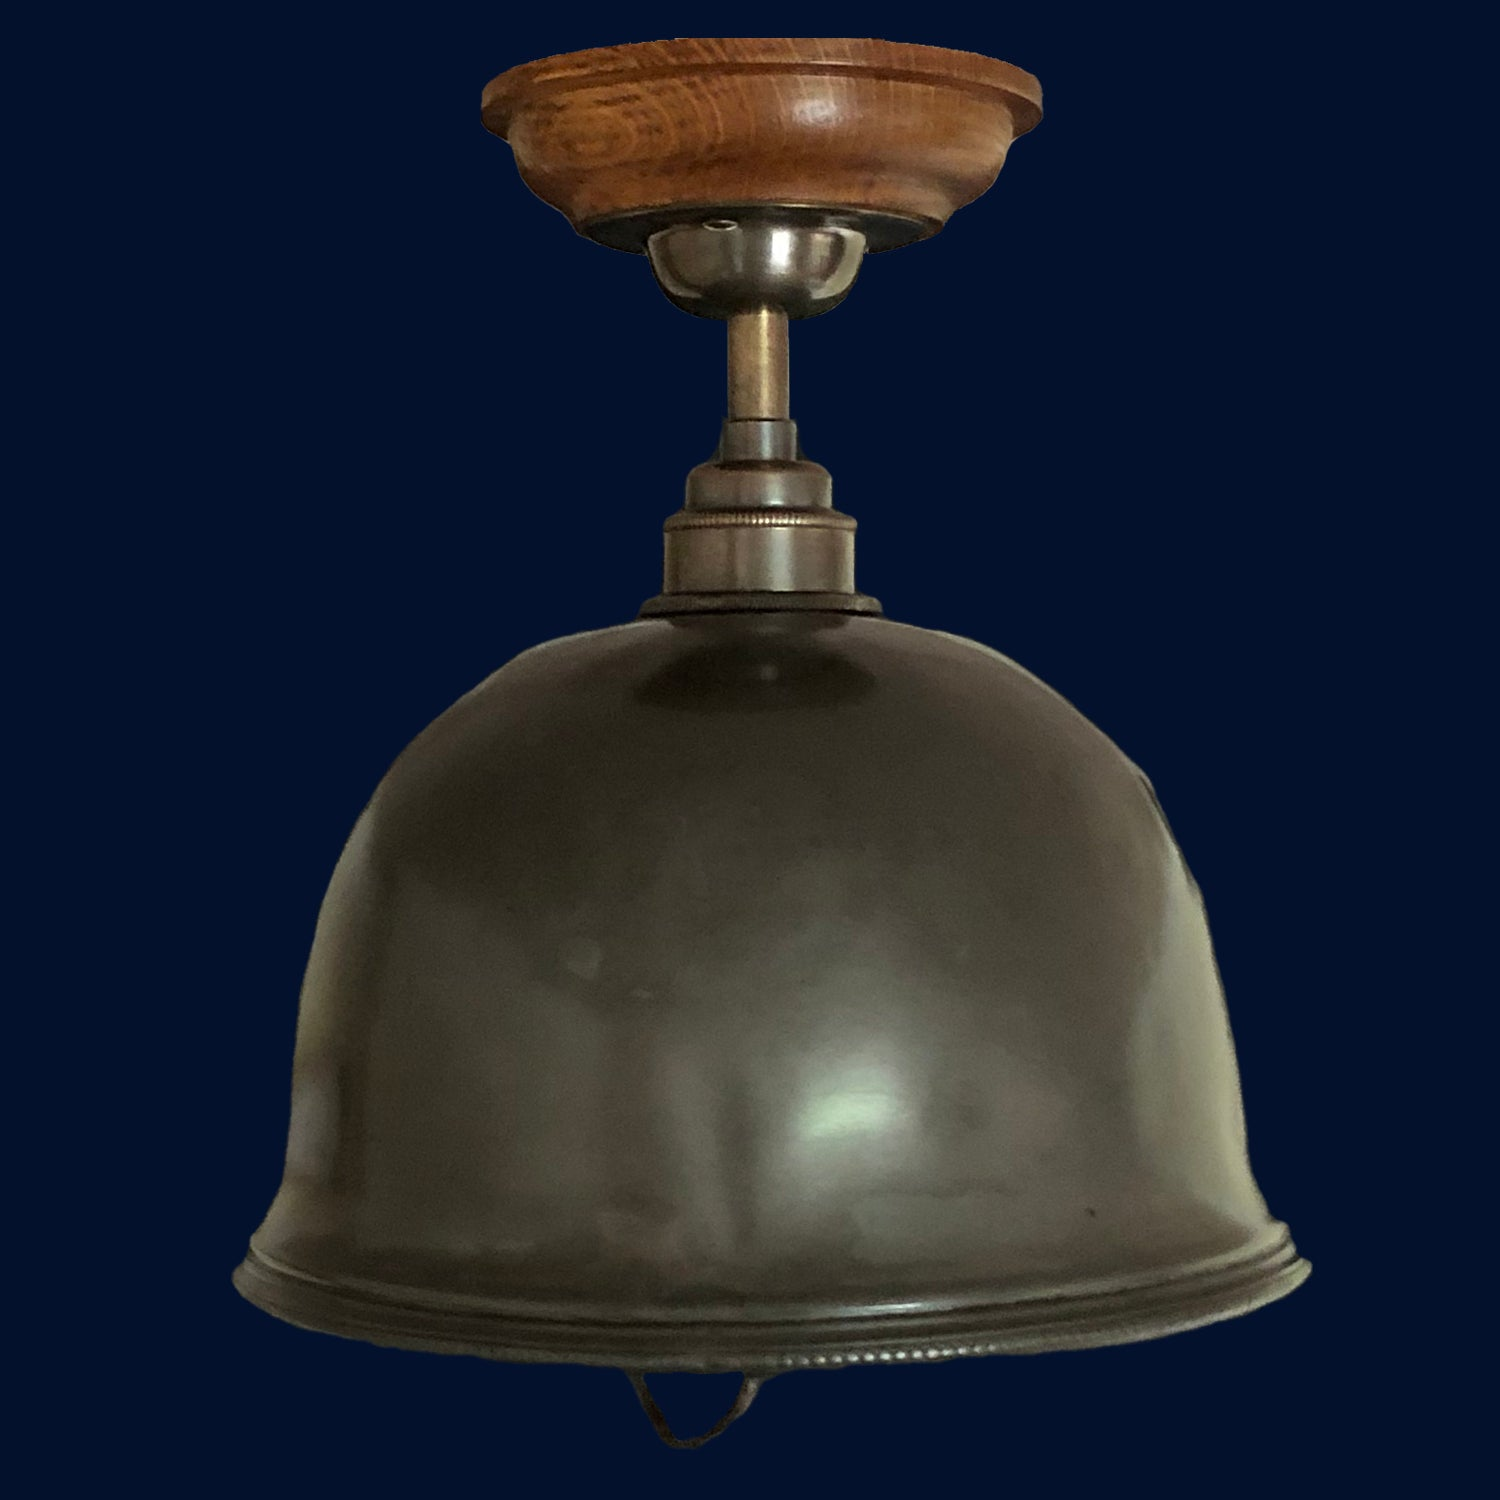 Antique Pewter Banqueting Dome/Food Cloche Short Pendant Light - Grace 255